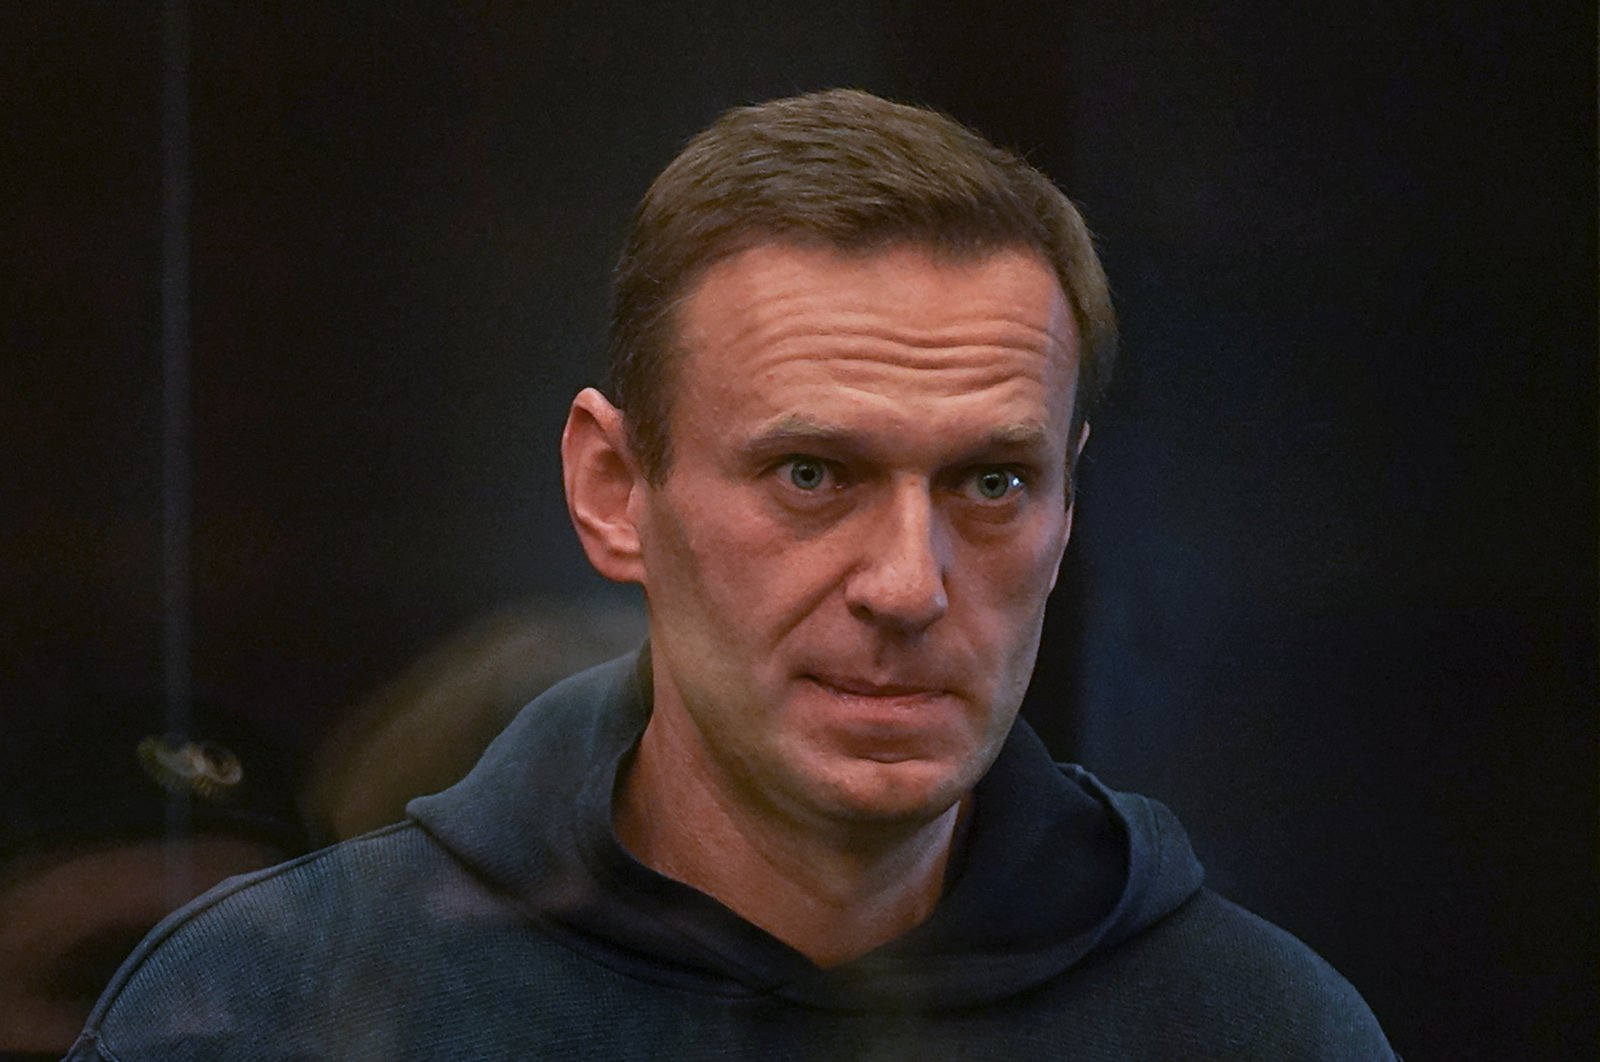 Russian opposition leader Alexei Navalny, accused of flouting the terms of a suspended sentence for embezzlement, attends a court hearing in Moscow, Russia Feb. 2, 2021. (Press service of Moscow City Court/Handout via Reuters)